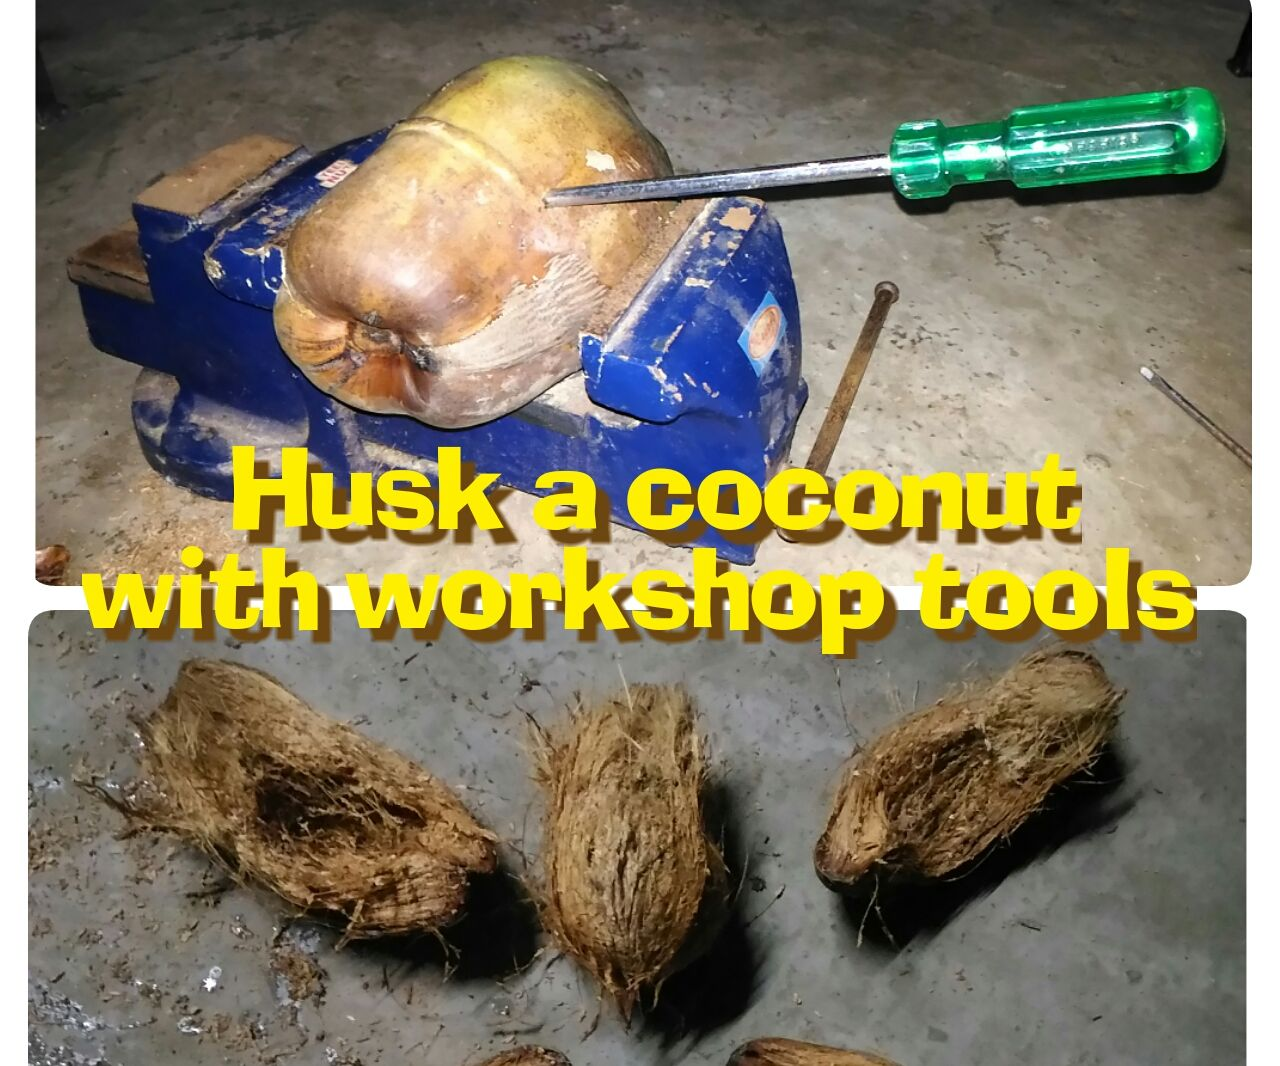 Husk a coconut with workshop tools